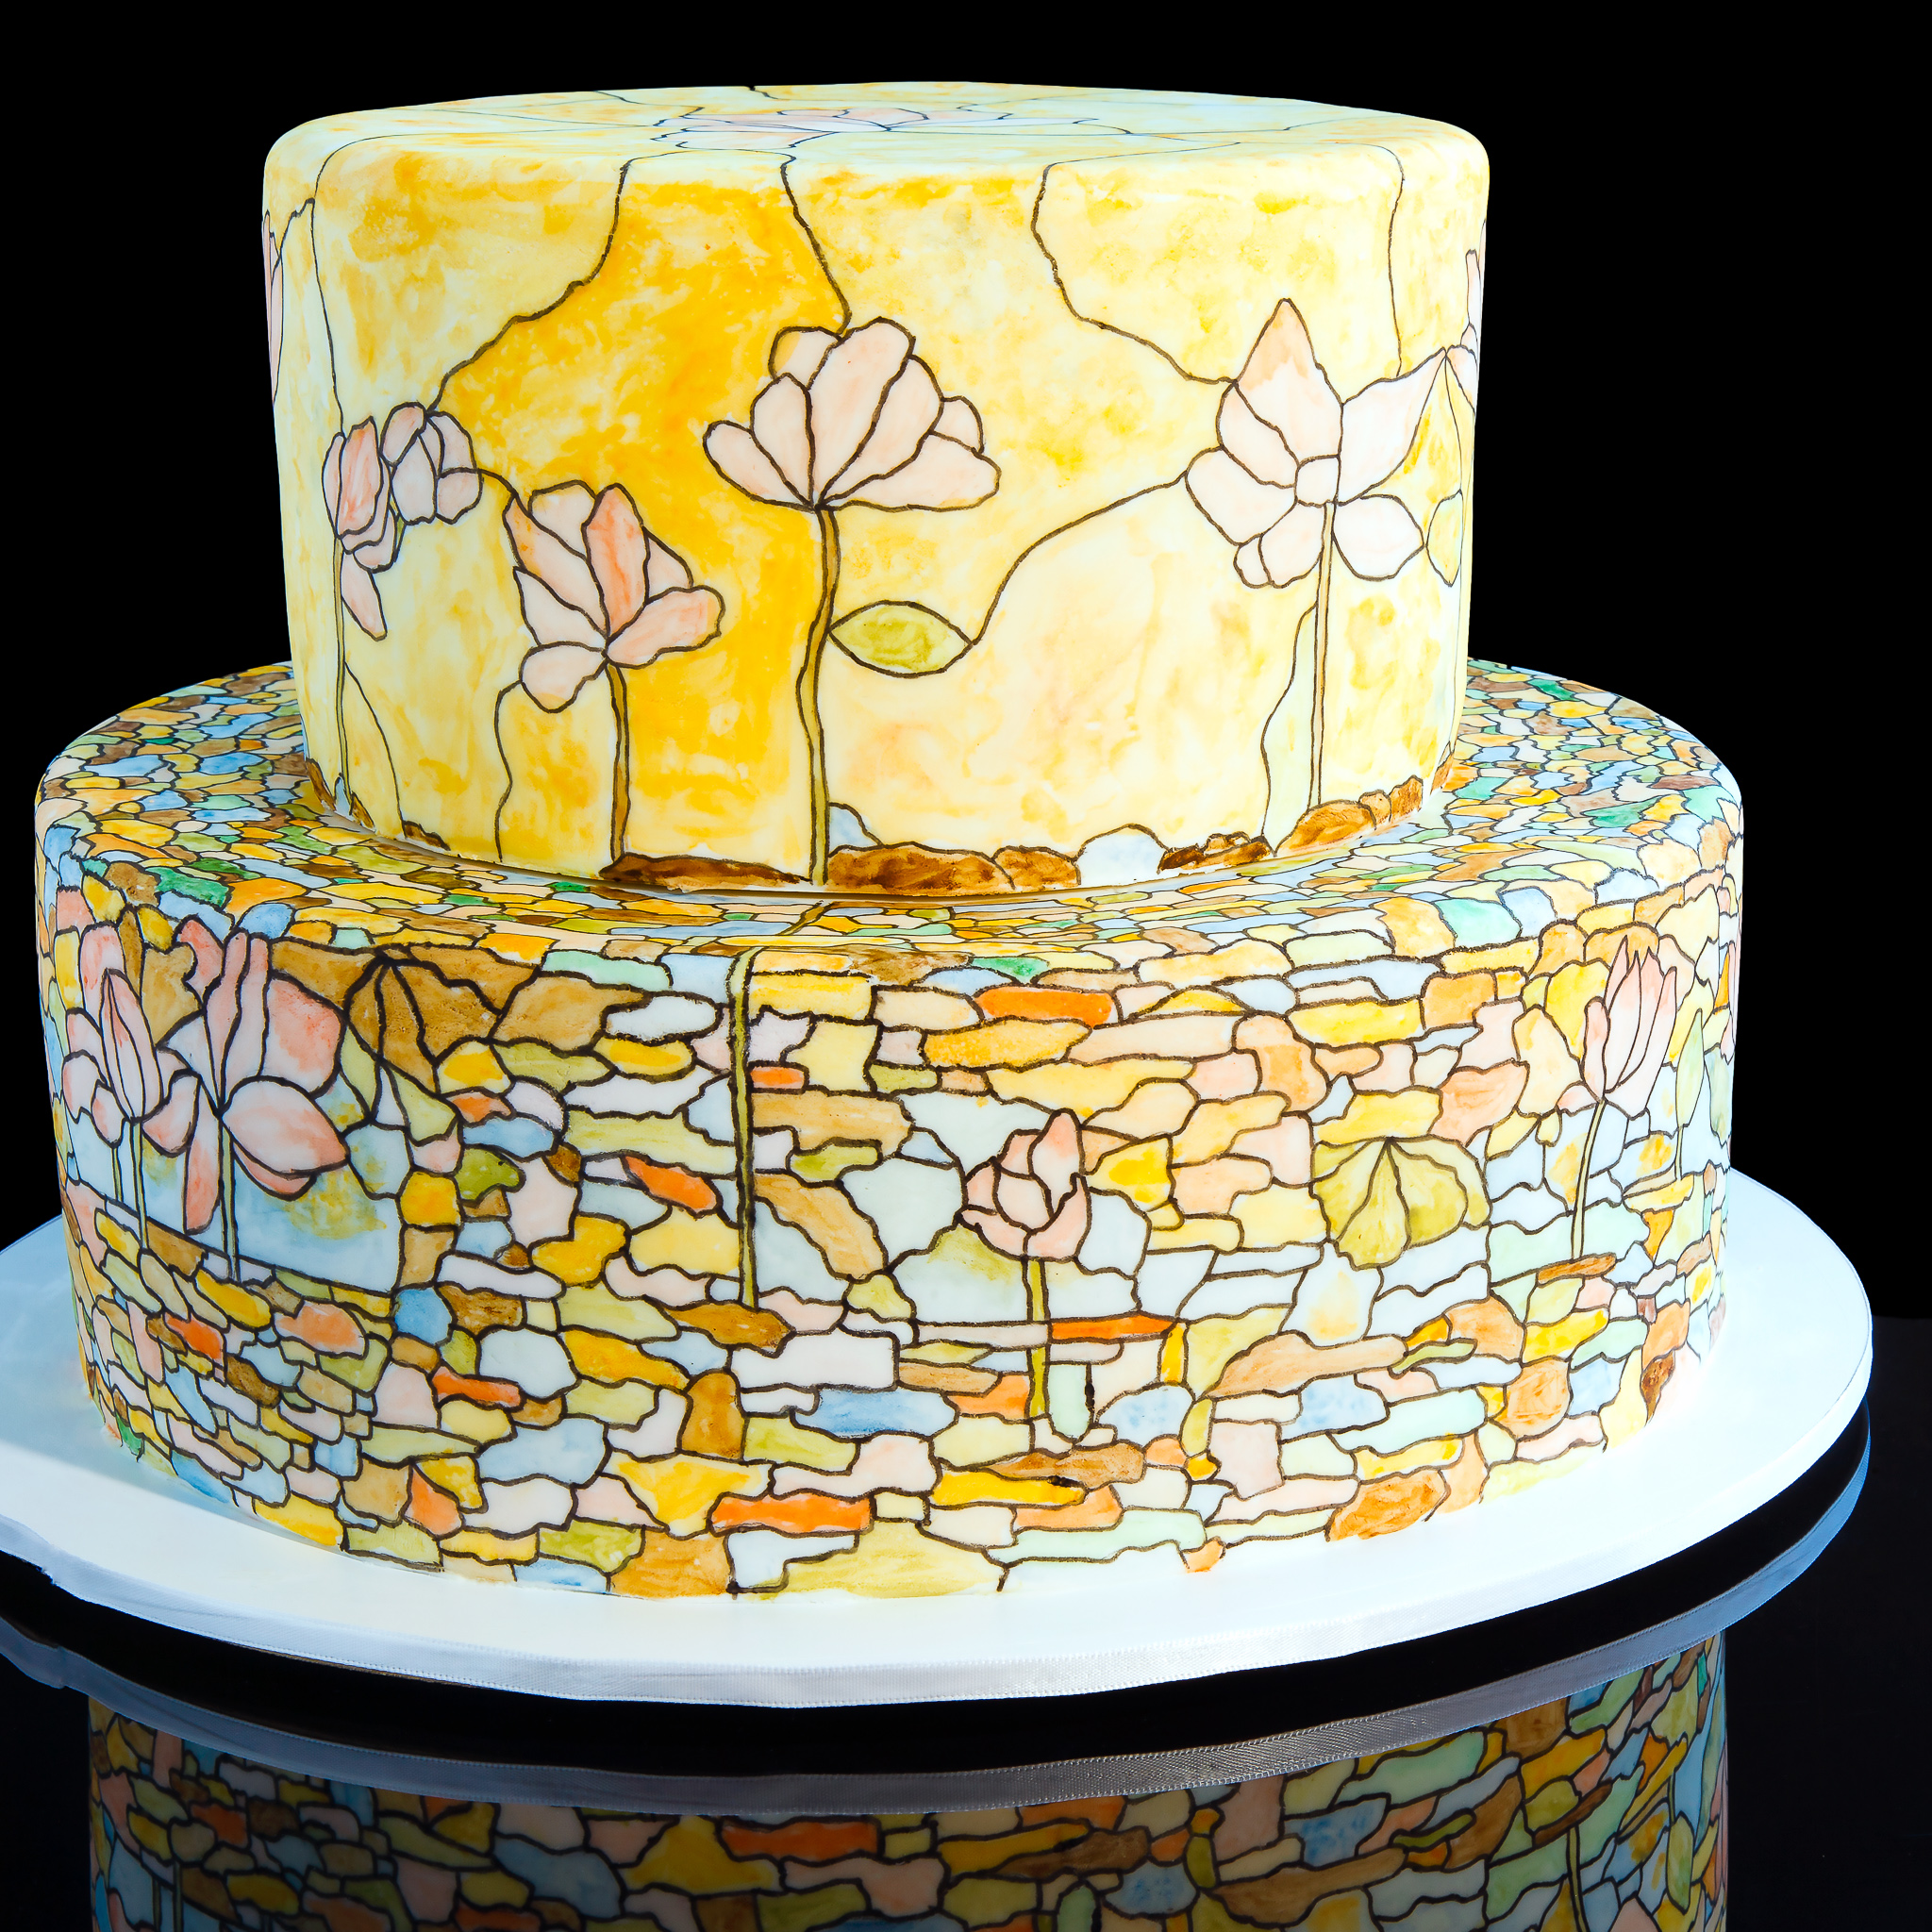 stained glass cake-5.jpg